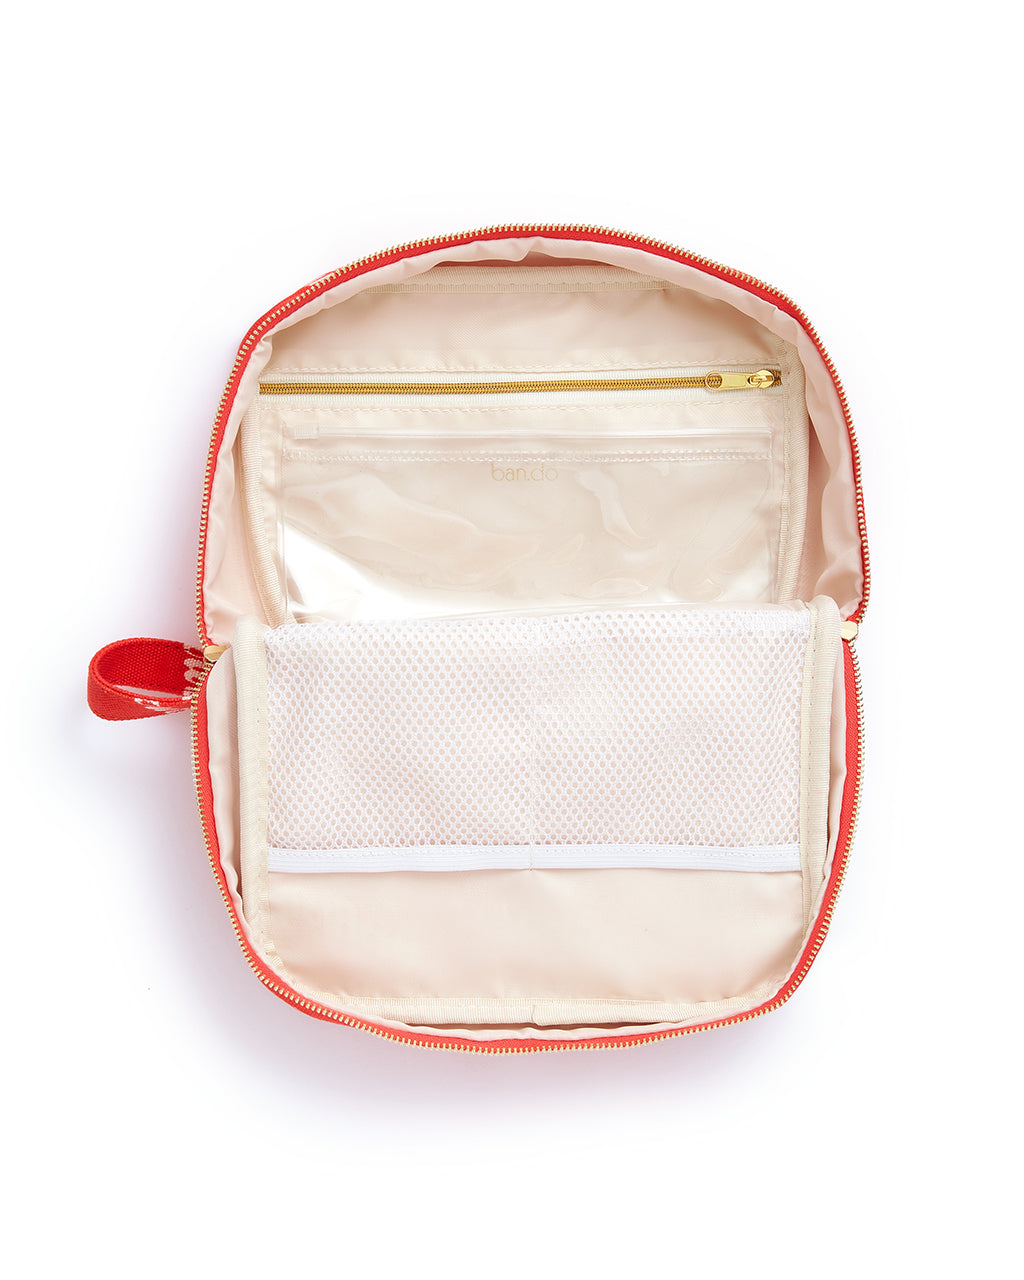 Home Care Bag That Can Be Wiped Off